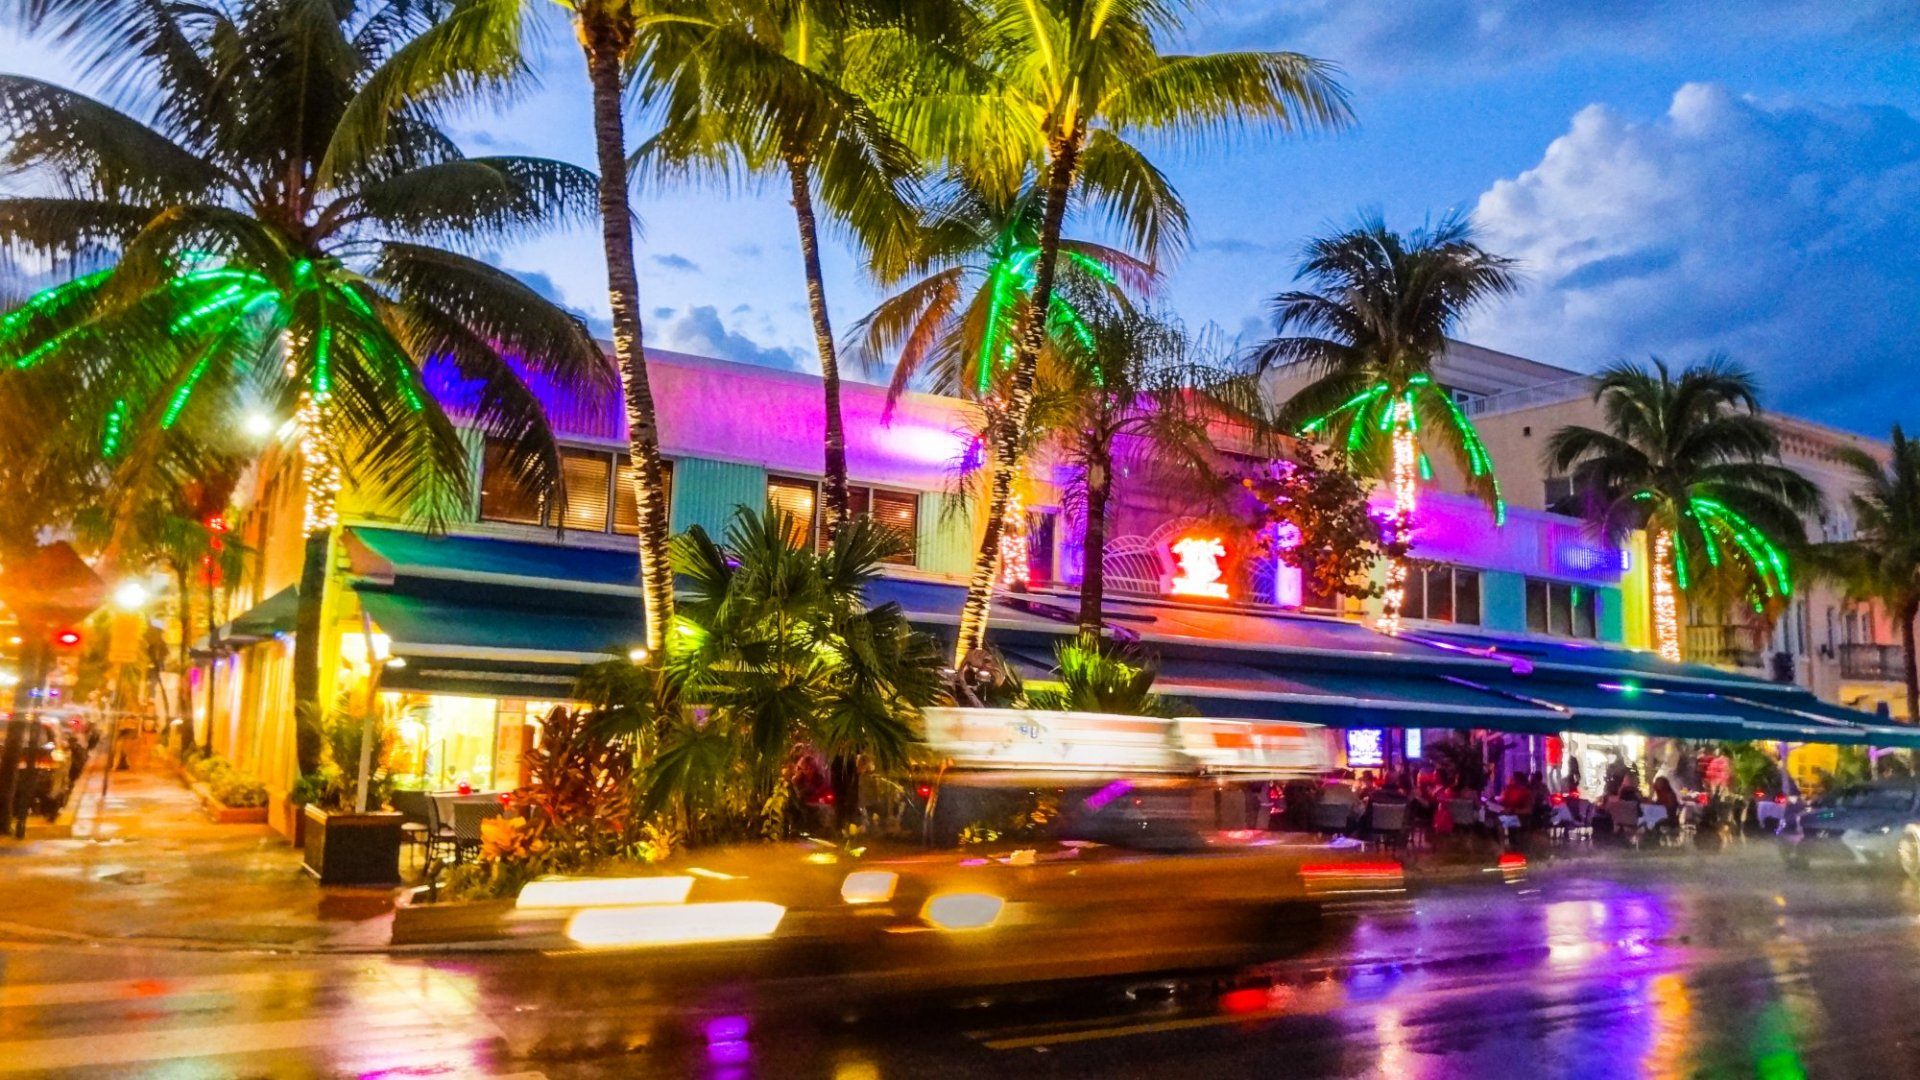 The 9 Fastest-Growing Companies in Miami